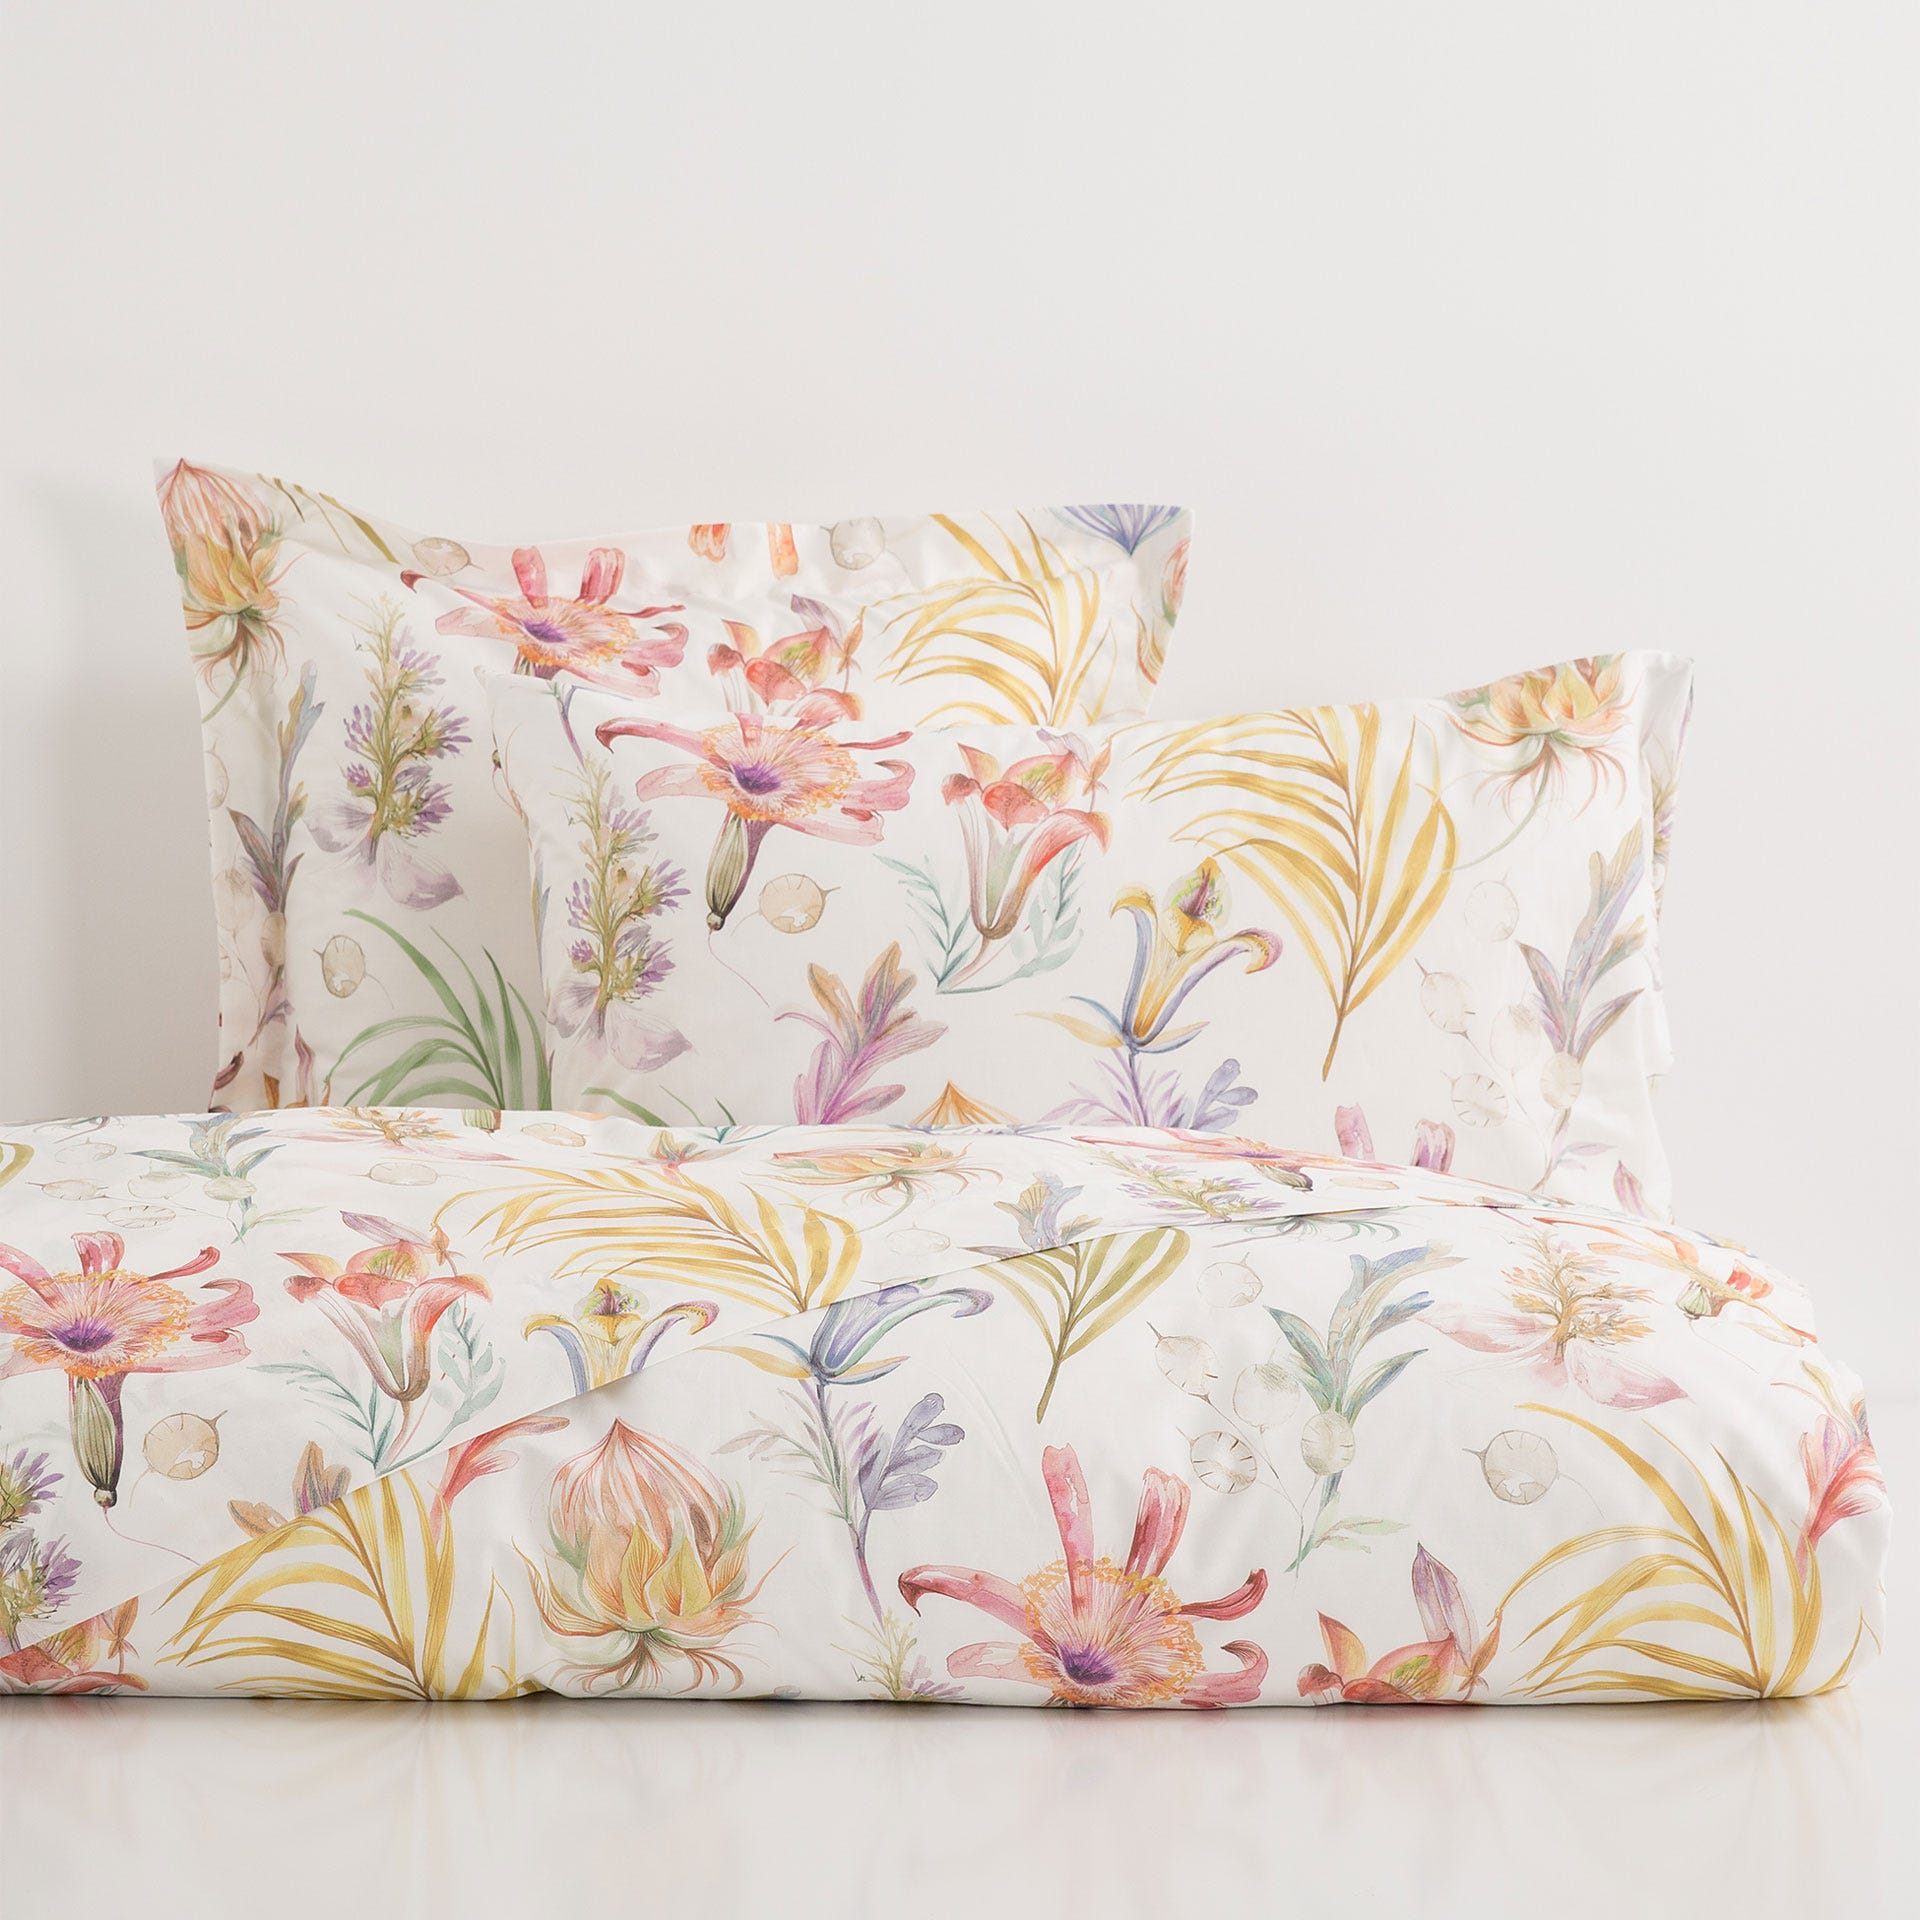 zara home botanical collection herbstkollektion, Hause ideen